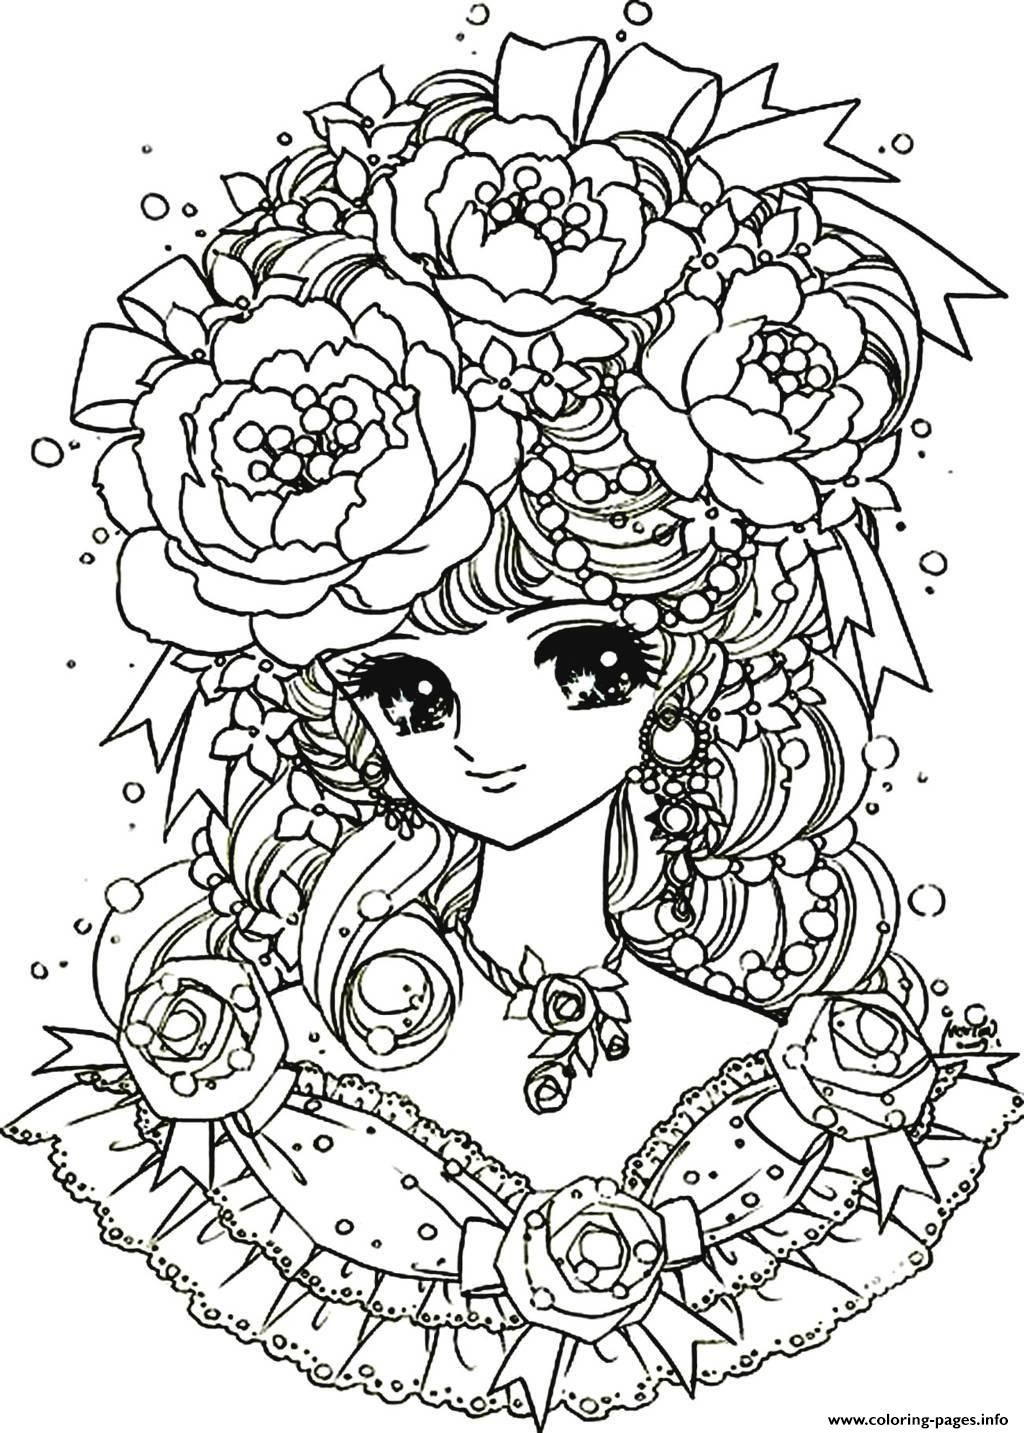 http://colorings.co/adudt-coloring-pages-for-girls/ #Pages, #Girls ...